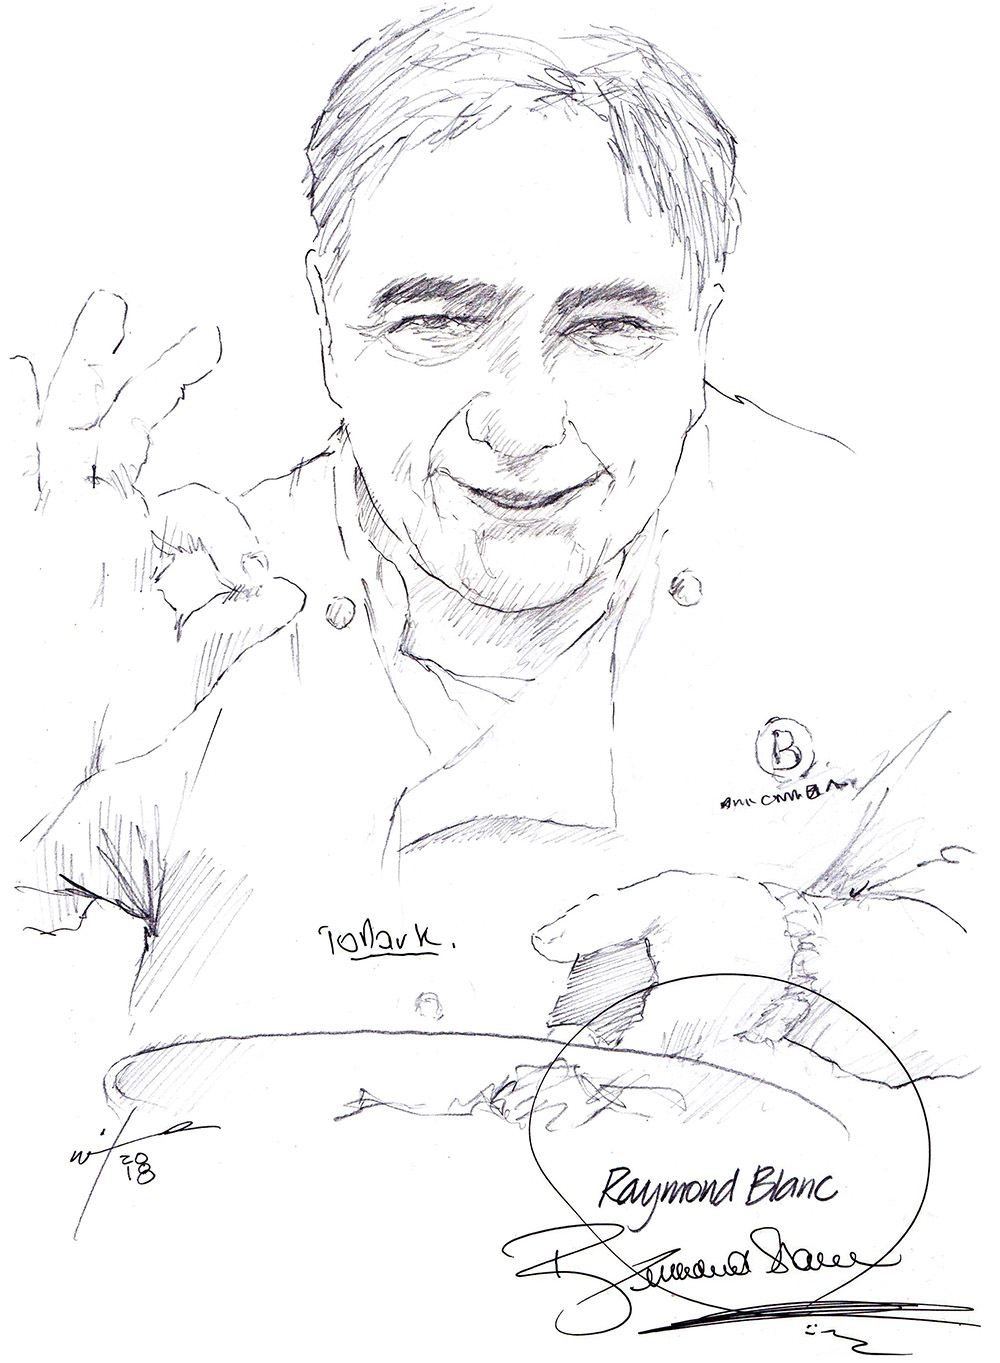 Autographed drawing of chef Raymond Blanc